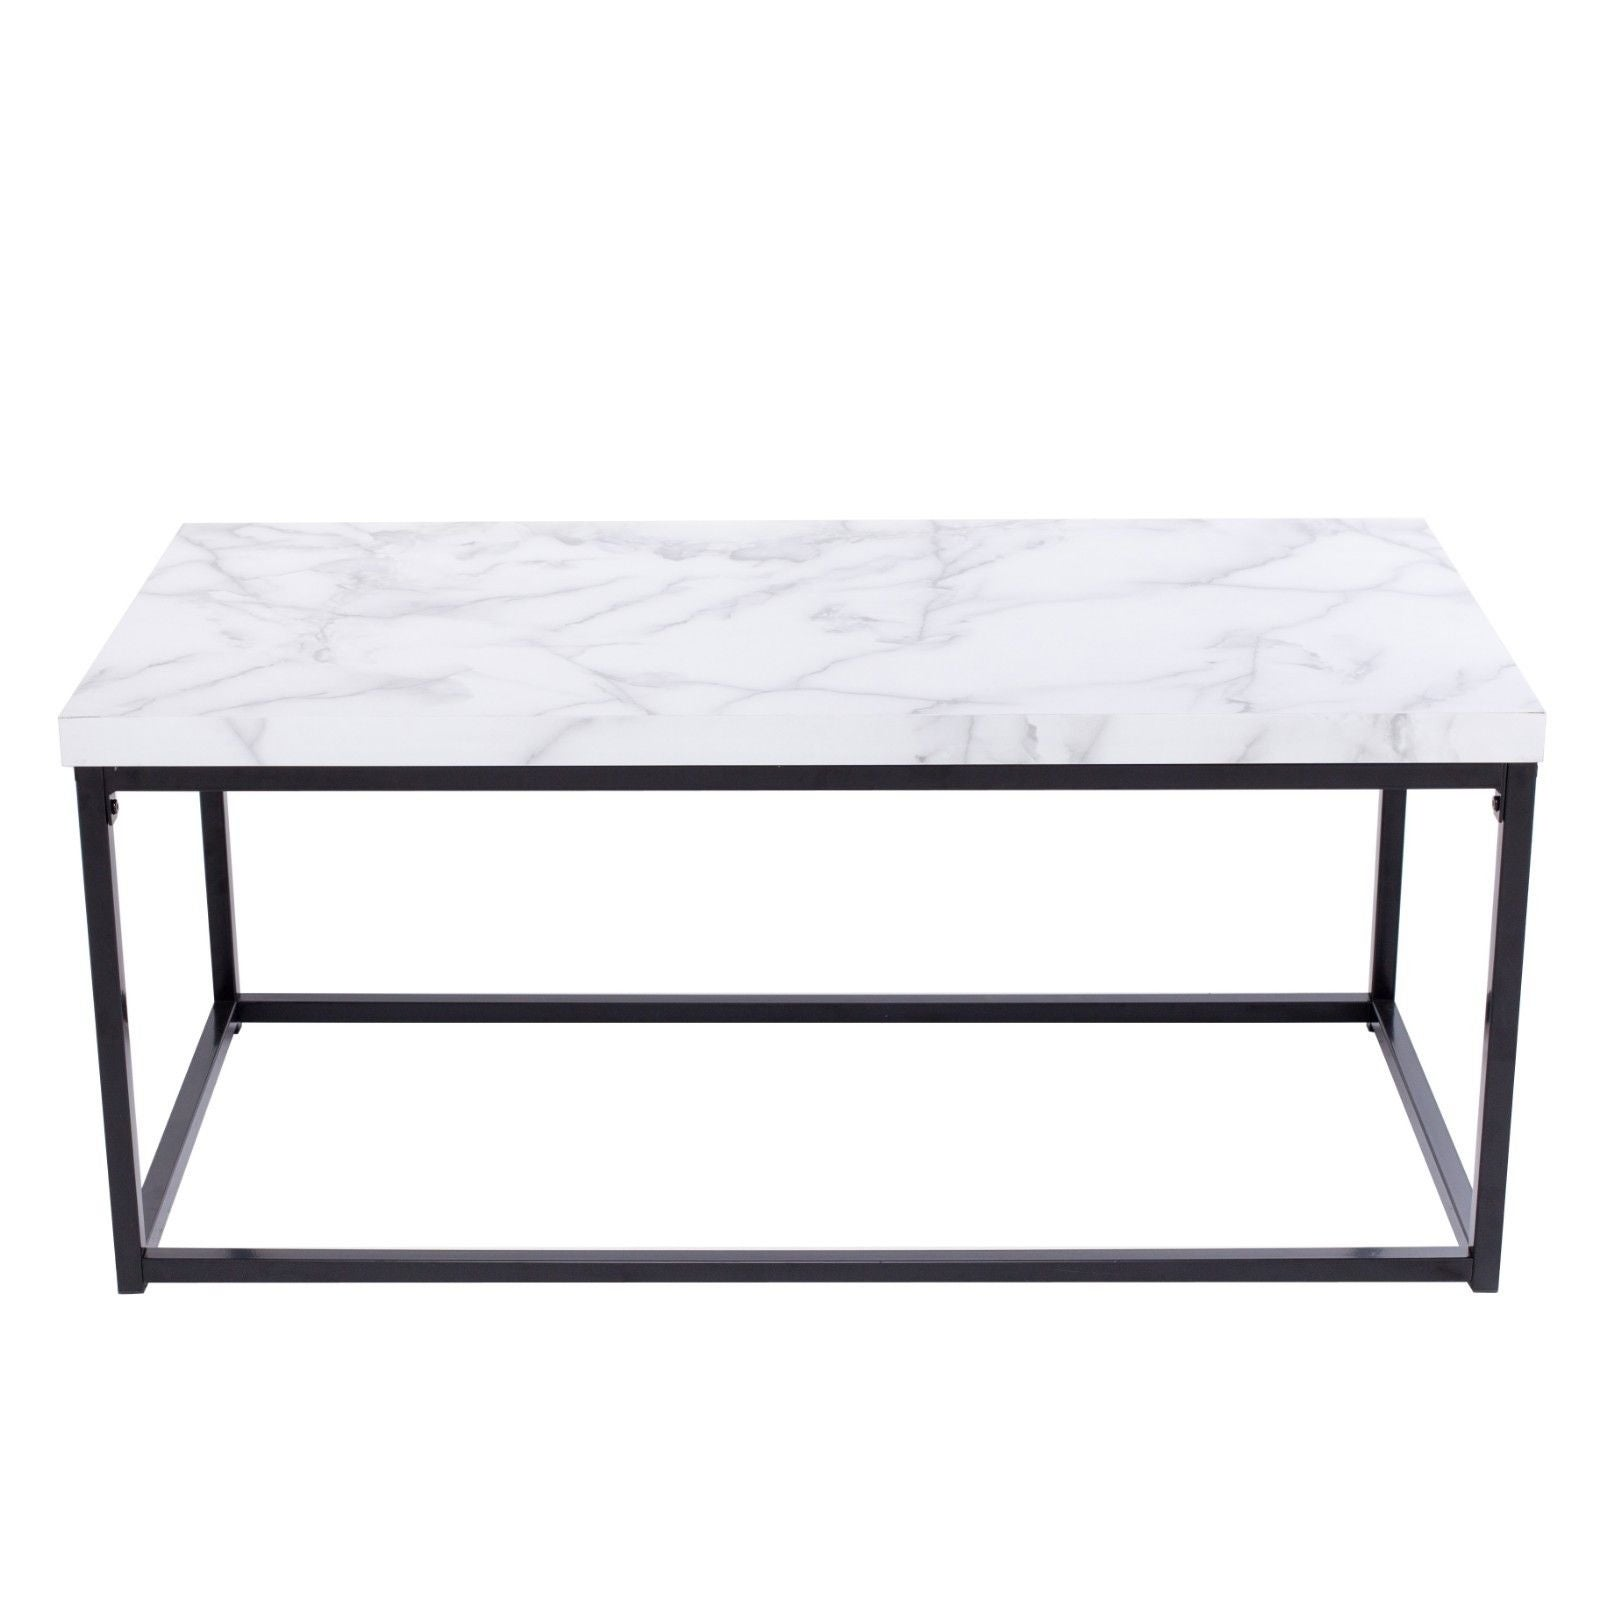 Gymax Modern Rectangular Tail Coffee Table Metal Frame Living Room Furniture Black And Marble Free Shipping Today 22833866